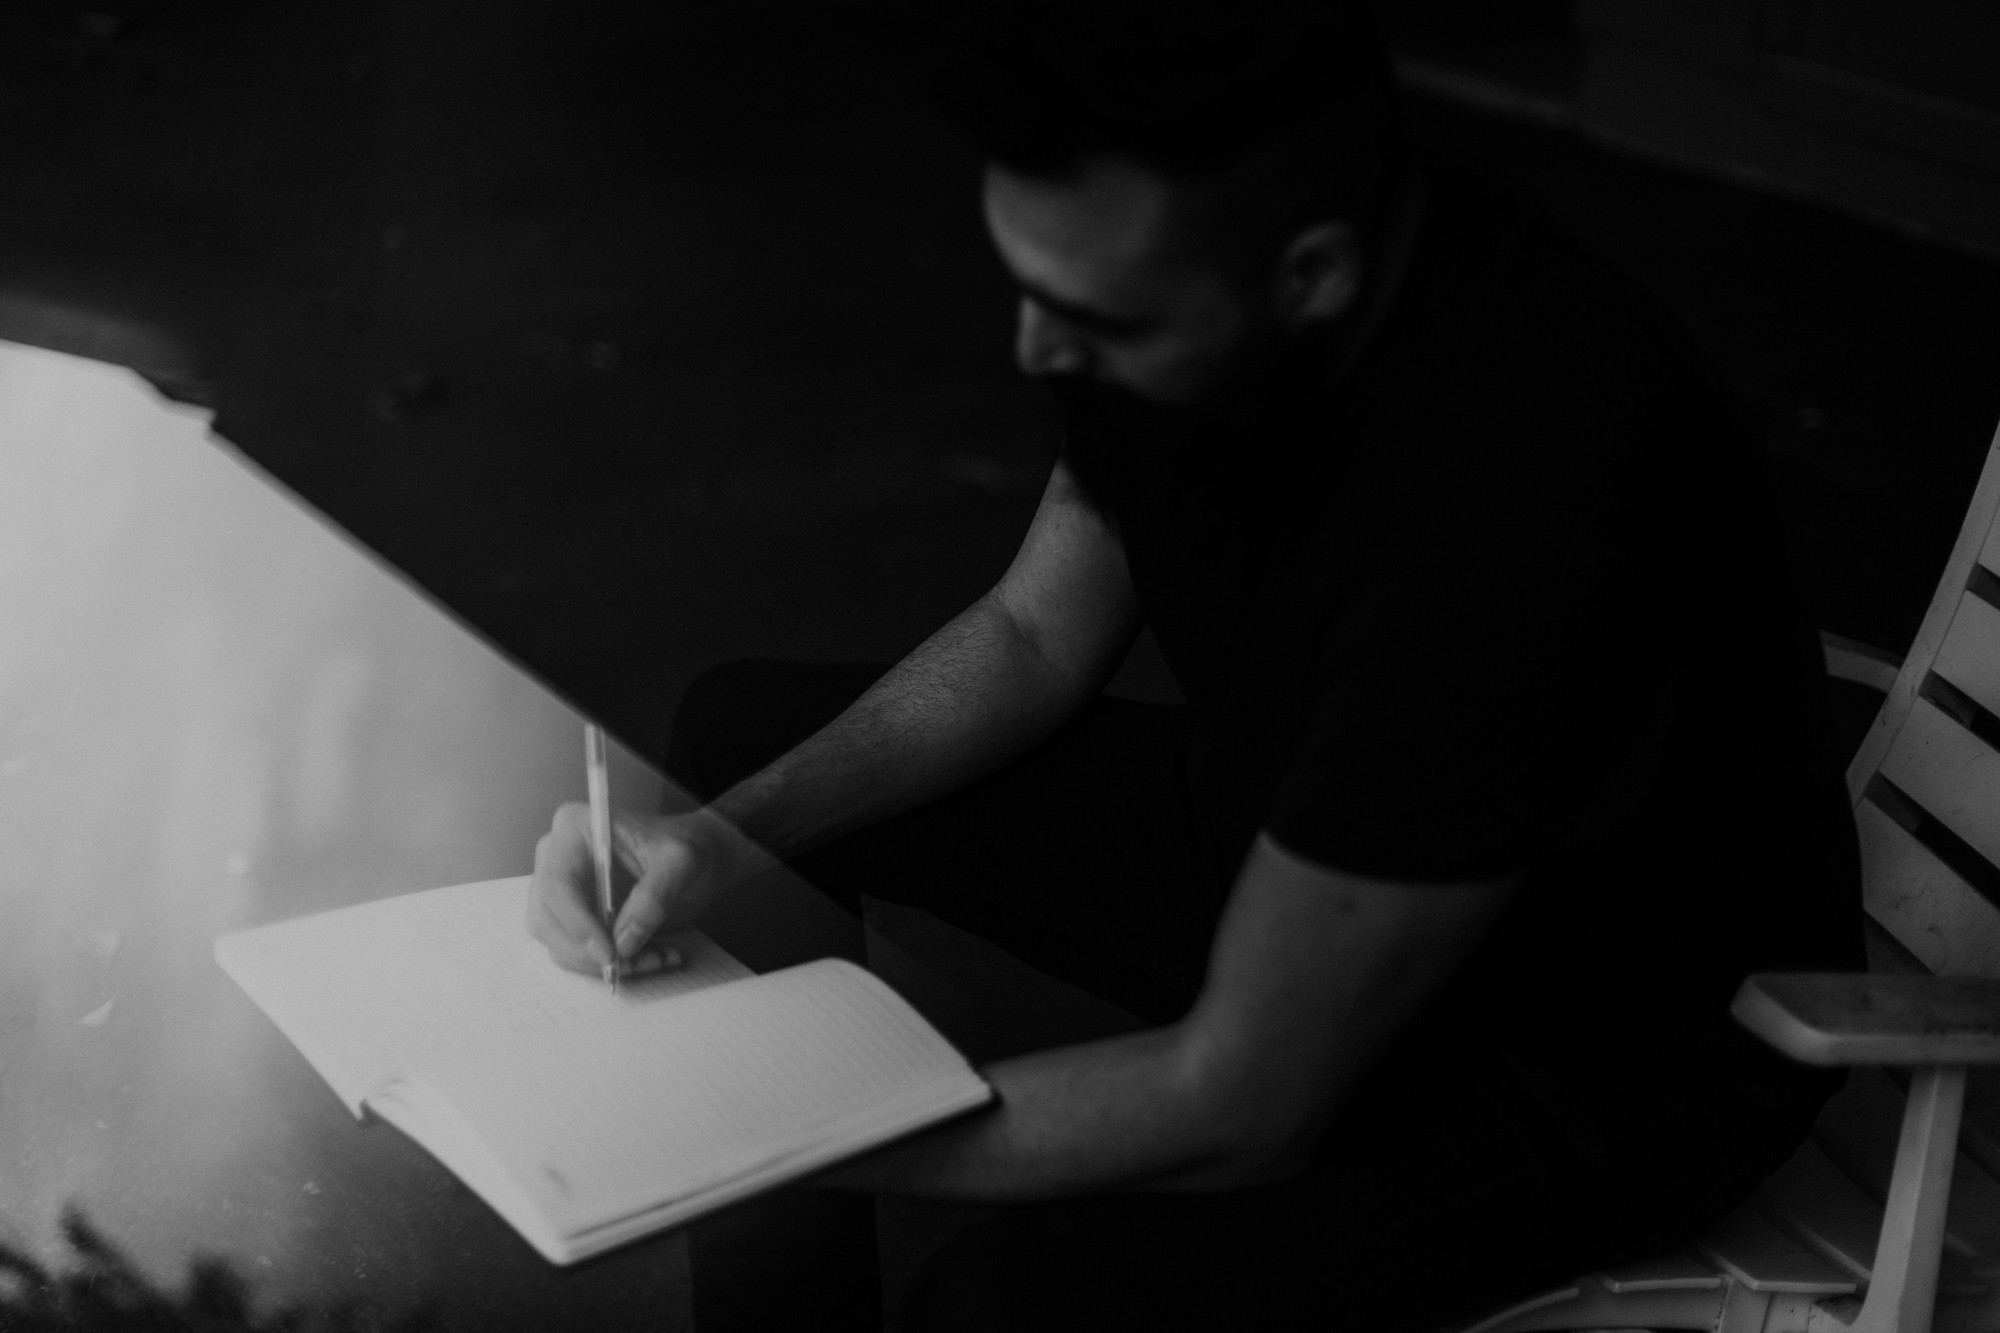 Black and white photo of a man writing in a notebook. The image is dark and faded to create a dramatic effect.